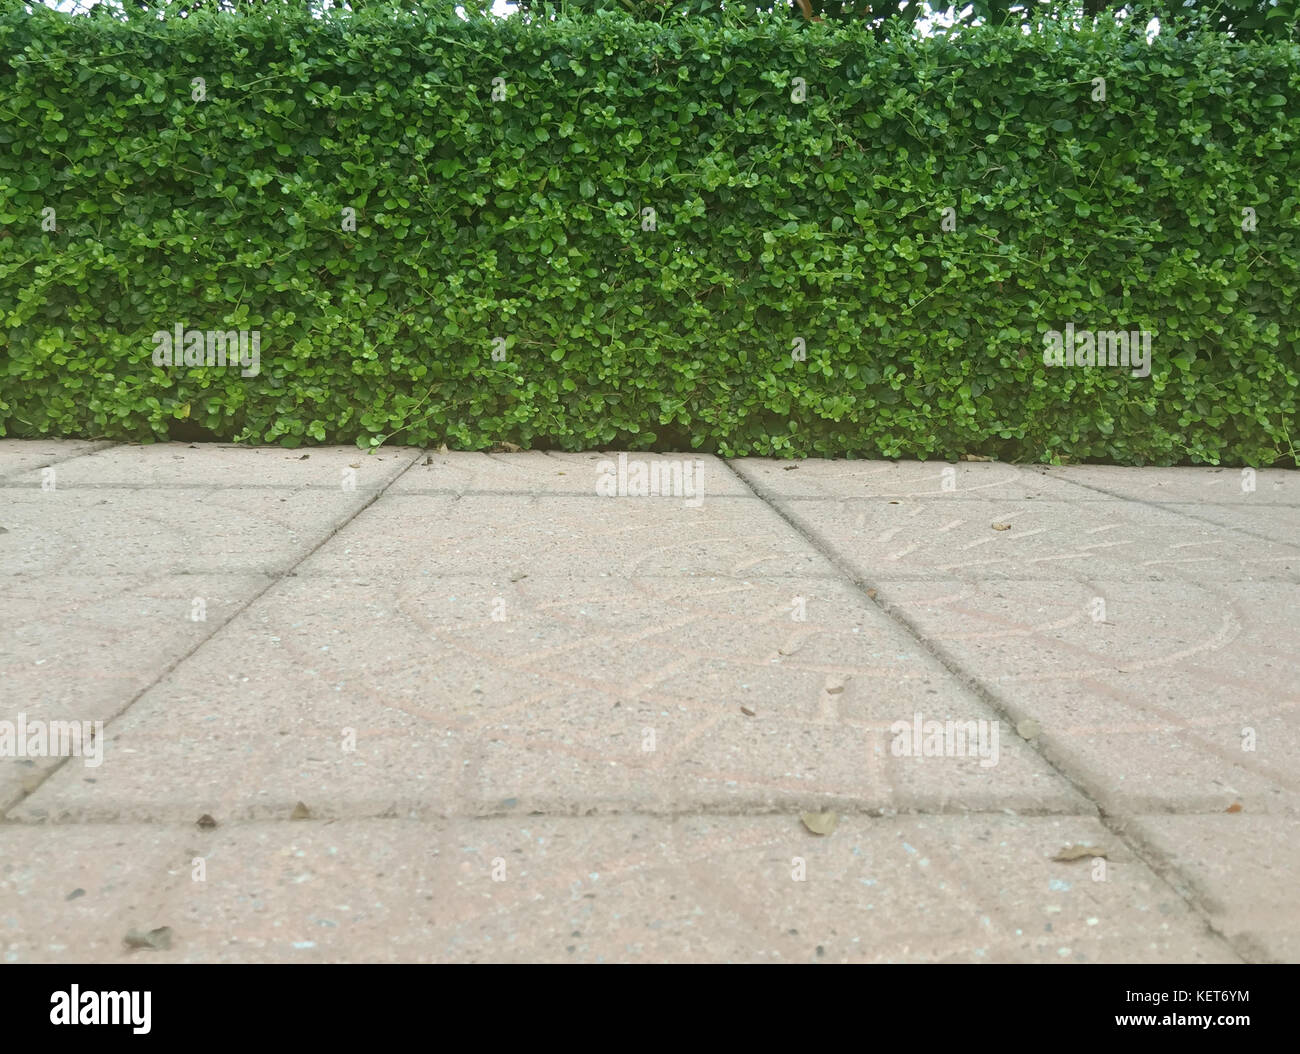 Green flooring stock photos green flooring stock images for Green floor plant